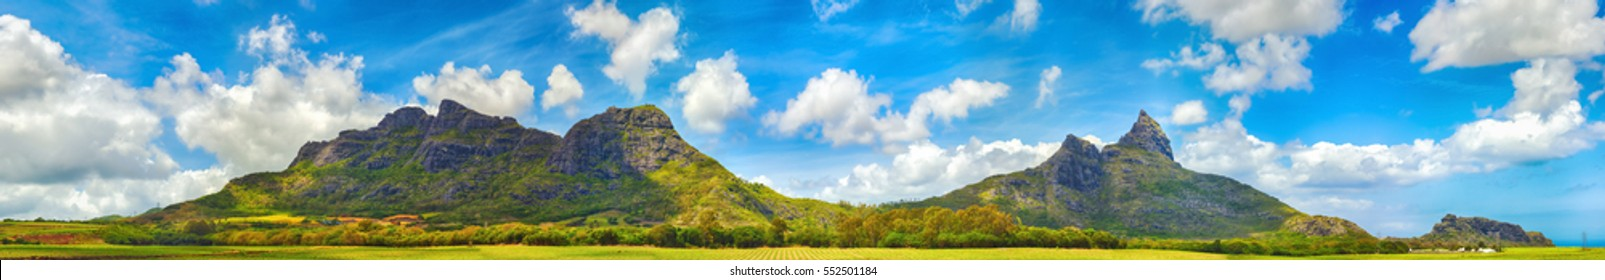 View of a mountains. Mauritius island. Panorama